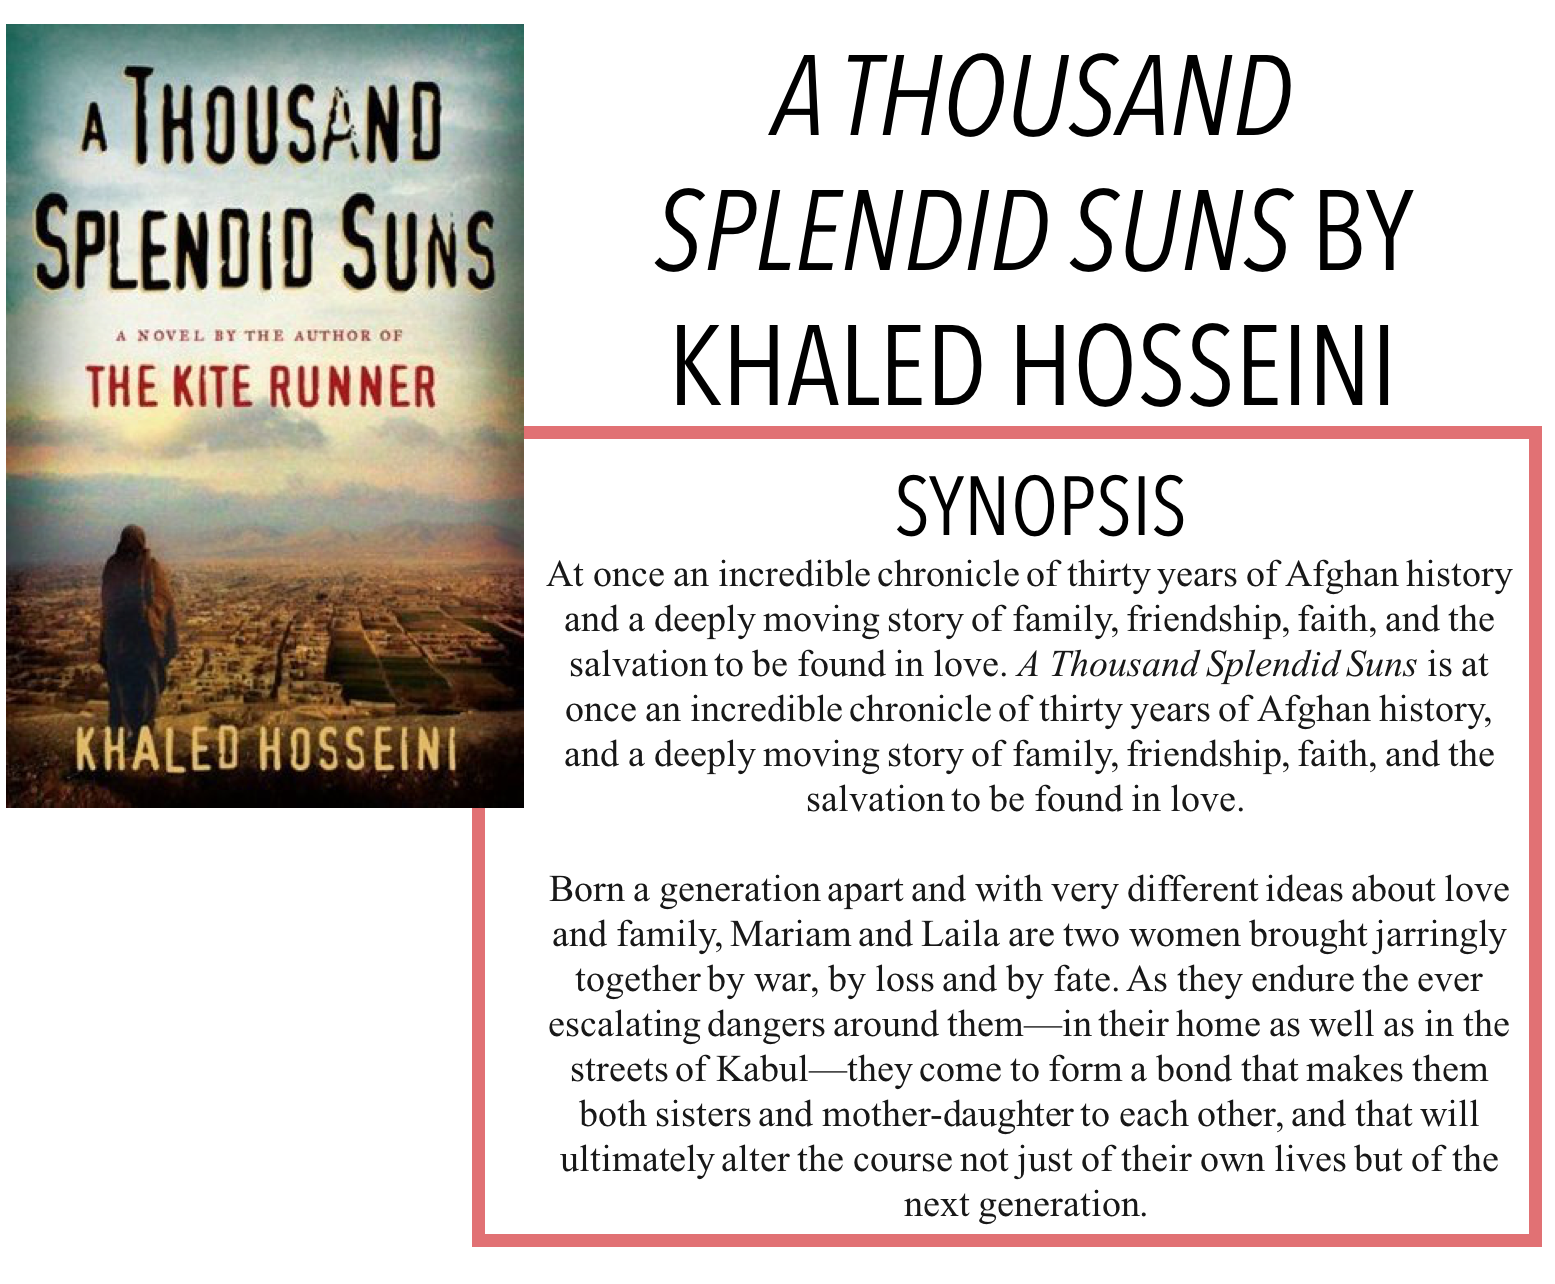 mariam and laila essay Multimedia essay- a thousand splendid suns in khaled hosseini's a thousand splendid suns, the inner strength of women is shown through mariam and laila.